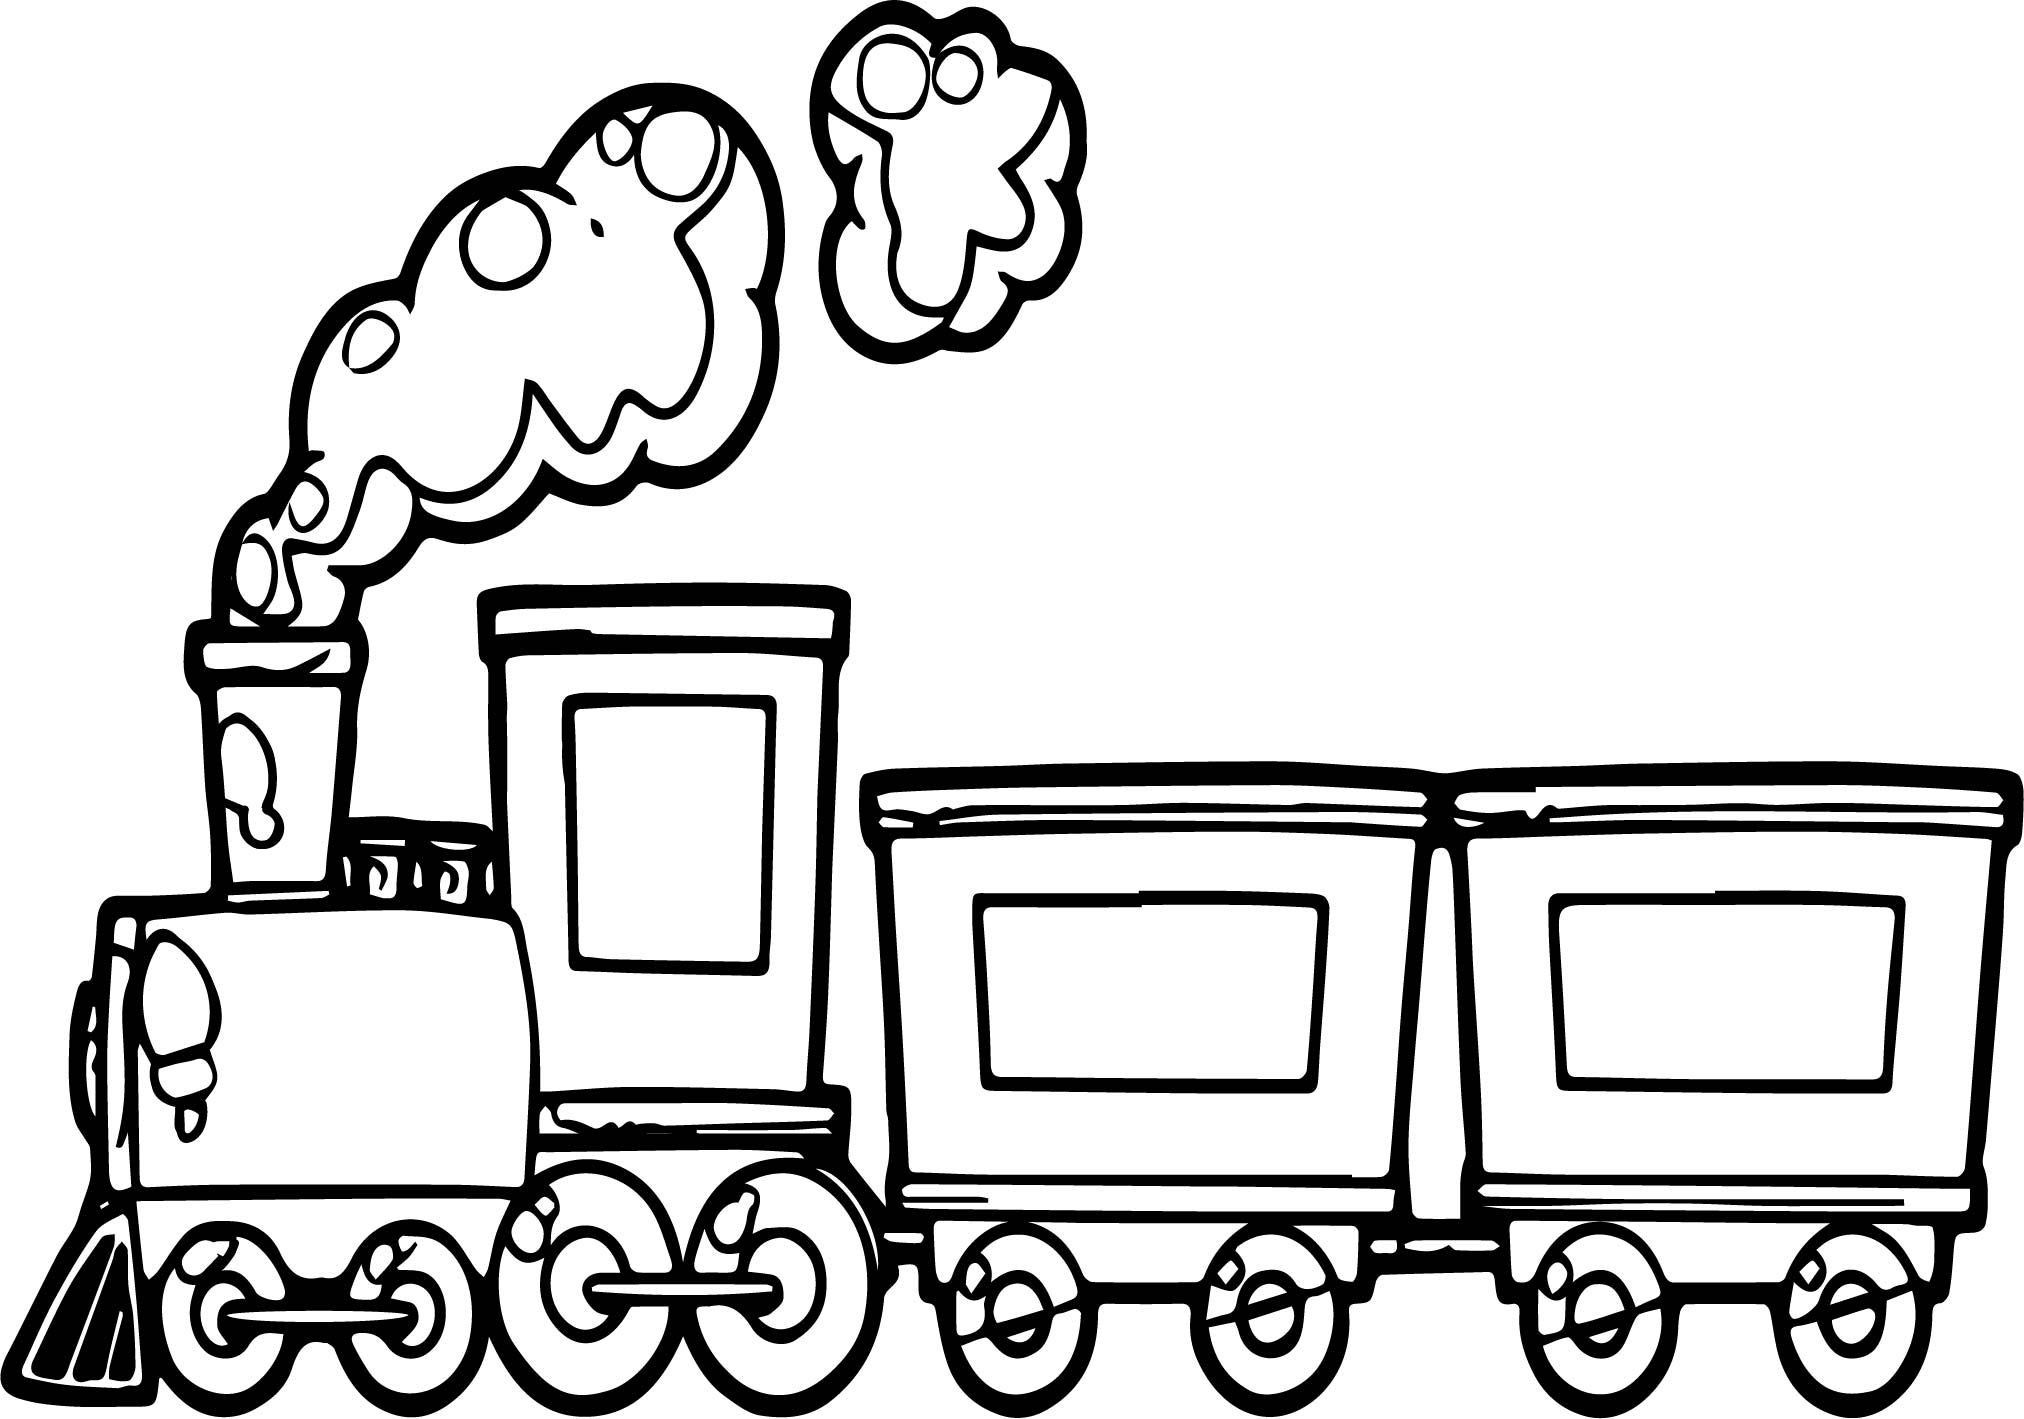 Train Coloring In 2021 Train Coloring Pages Train Cartoon Train Drawing